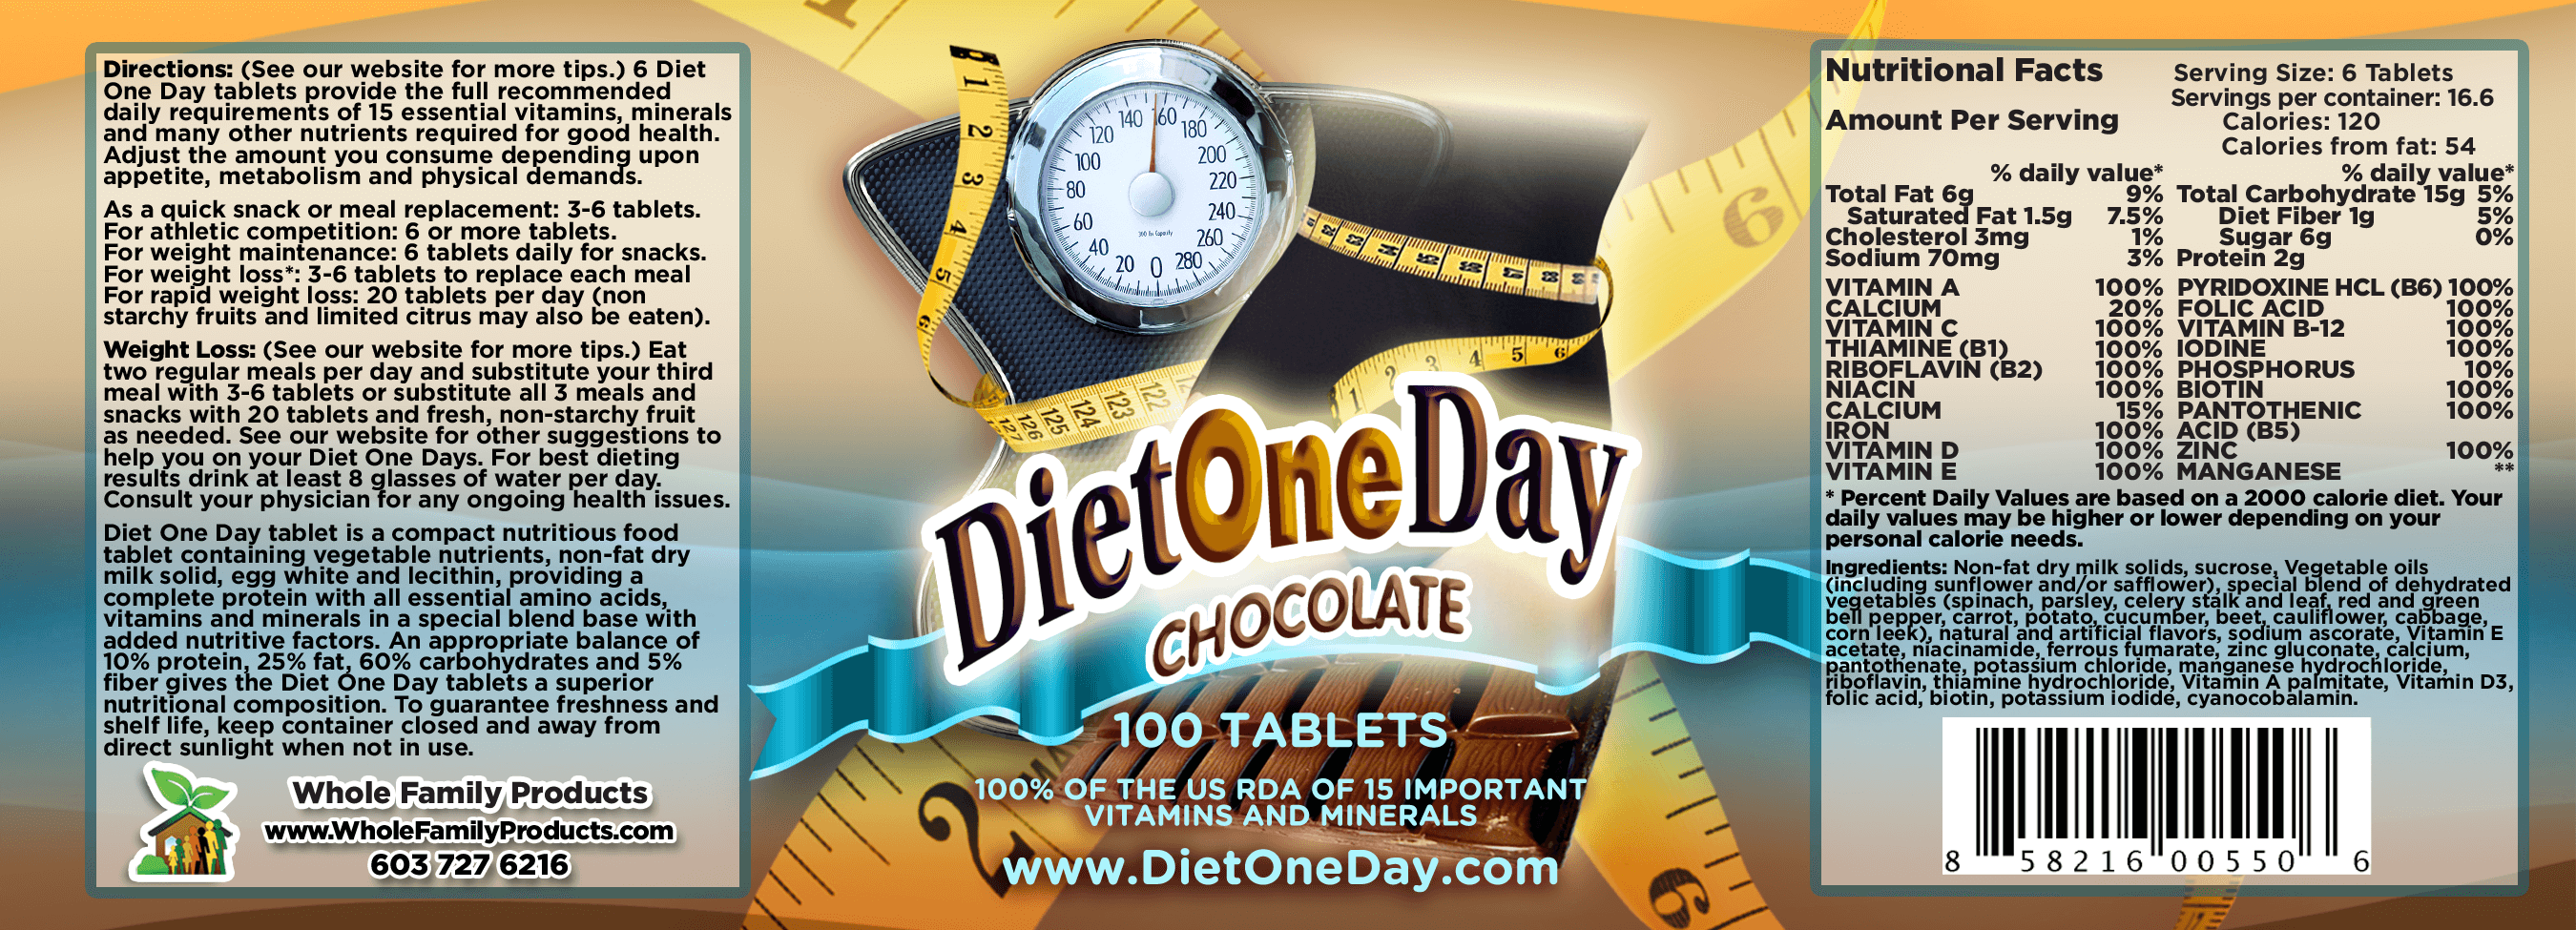 Diet One Day Wafers Chocolate 100ct Product Label